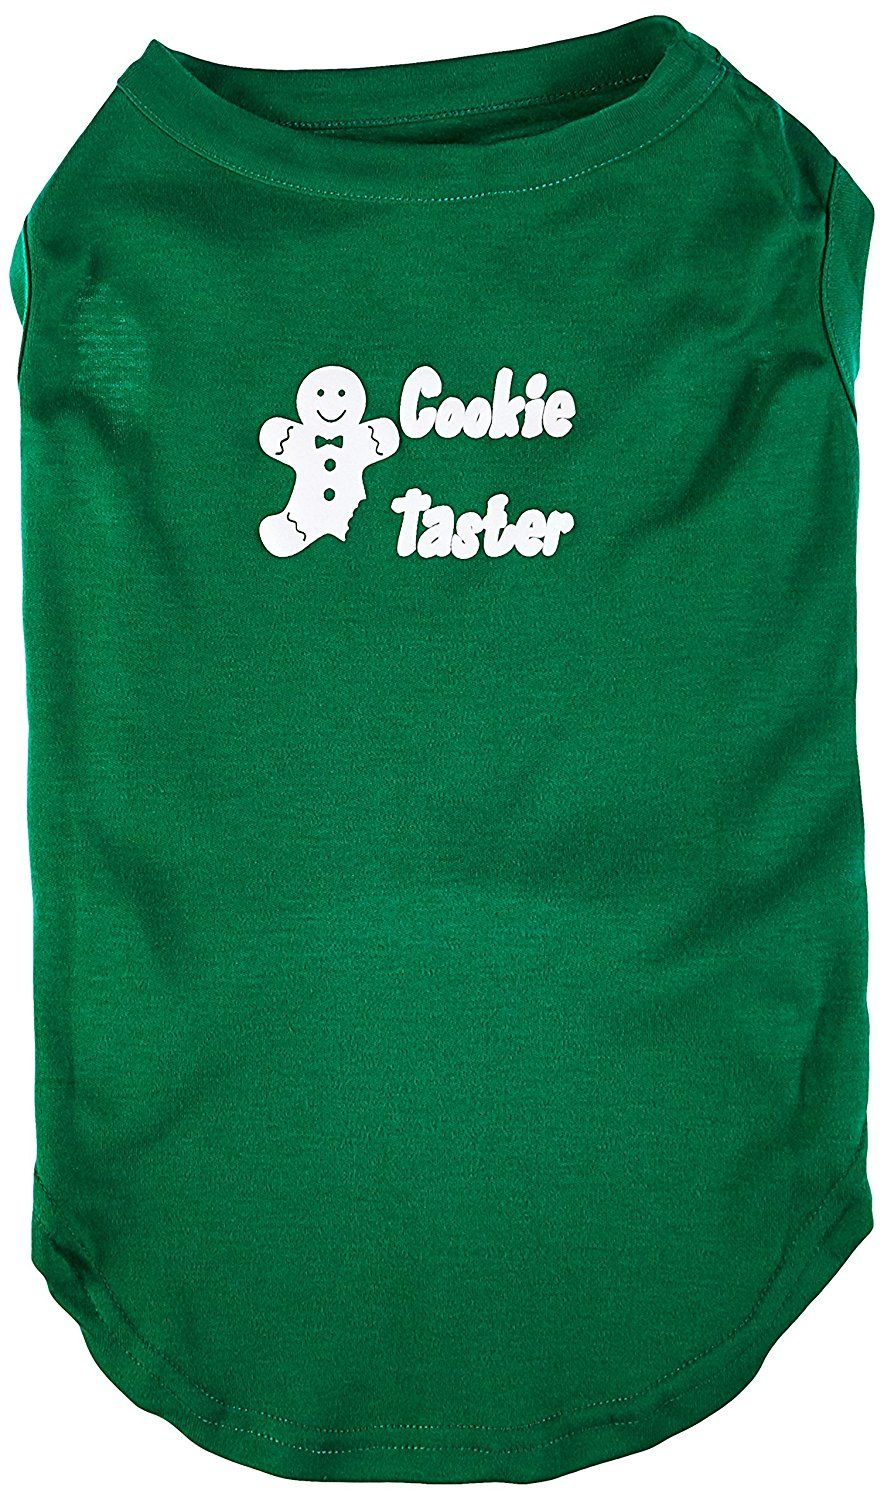 Mirage cat Products 18 Inch Cookie Taster Screen Print Shirts for